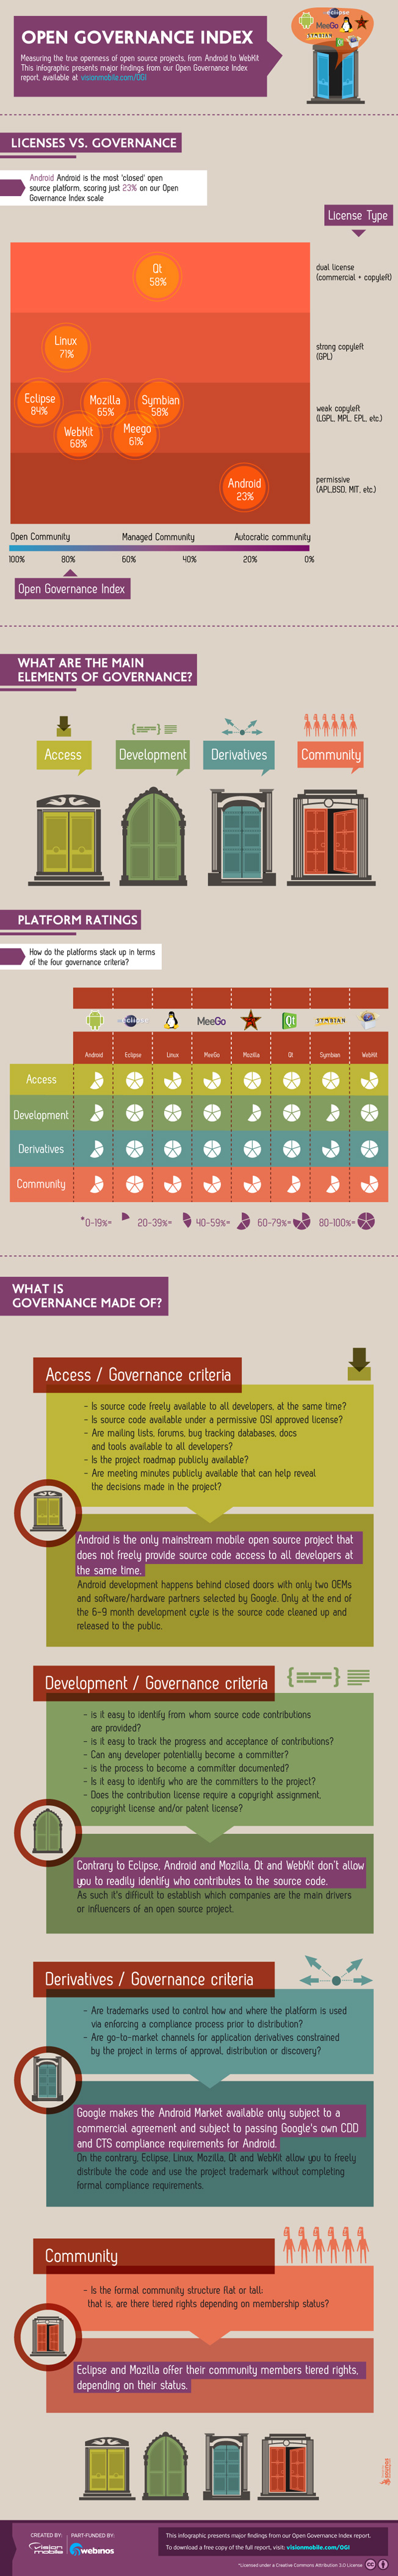 open source rankings infographic